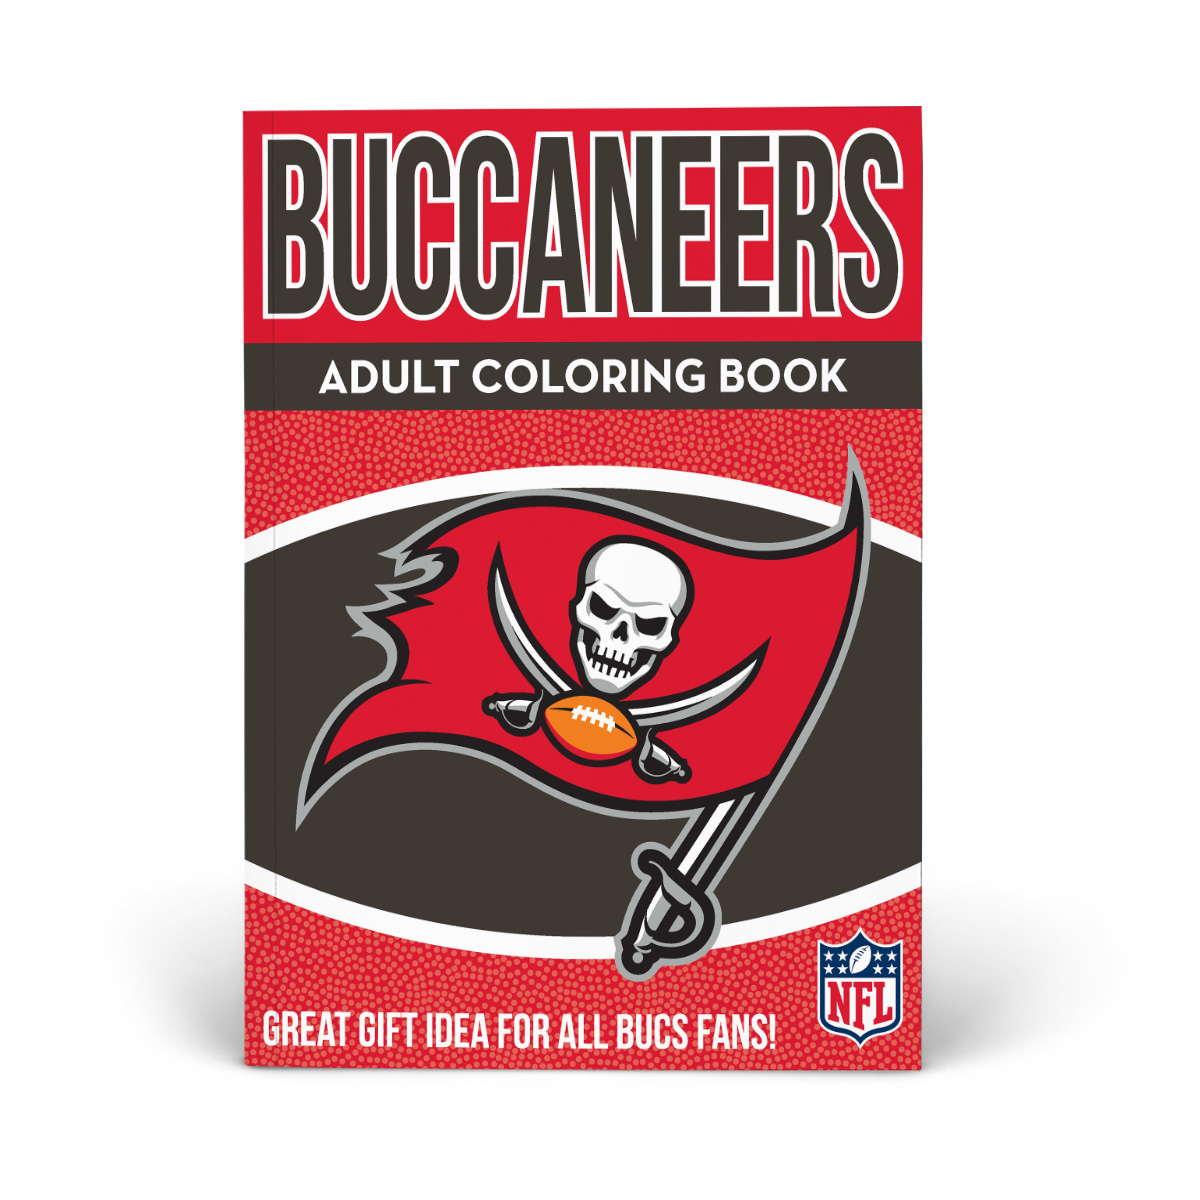 Tampa Bay Buccaneers Adult Coloring Book